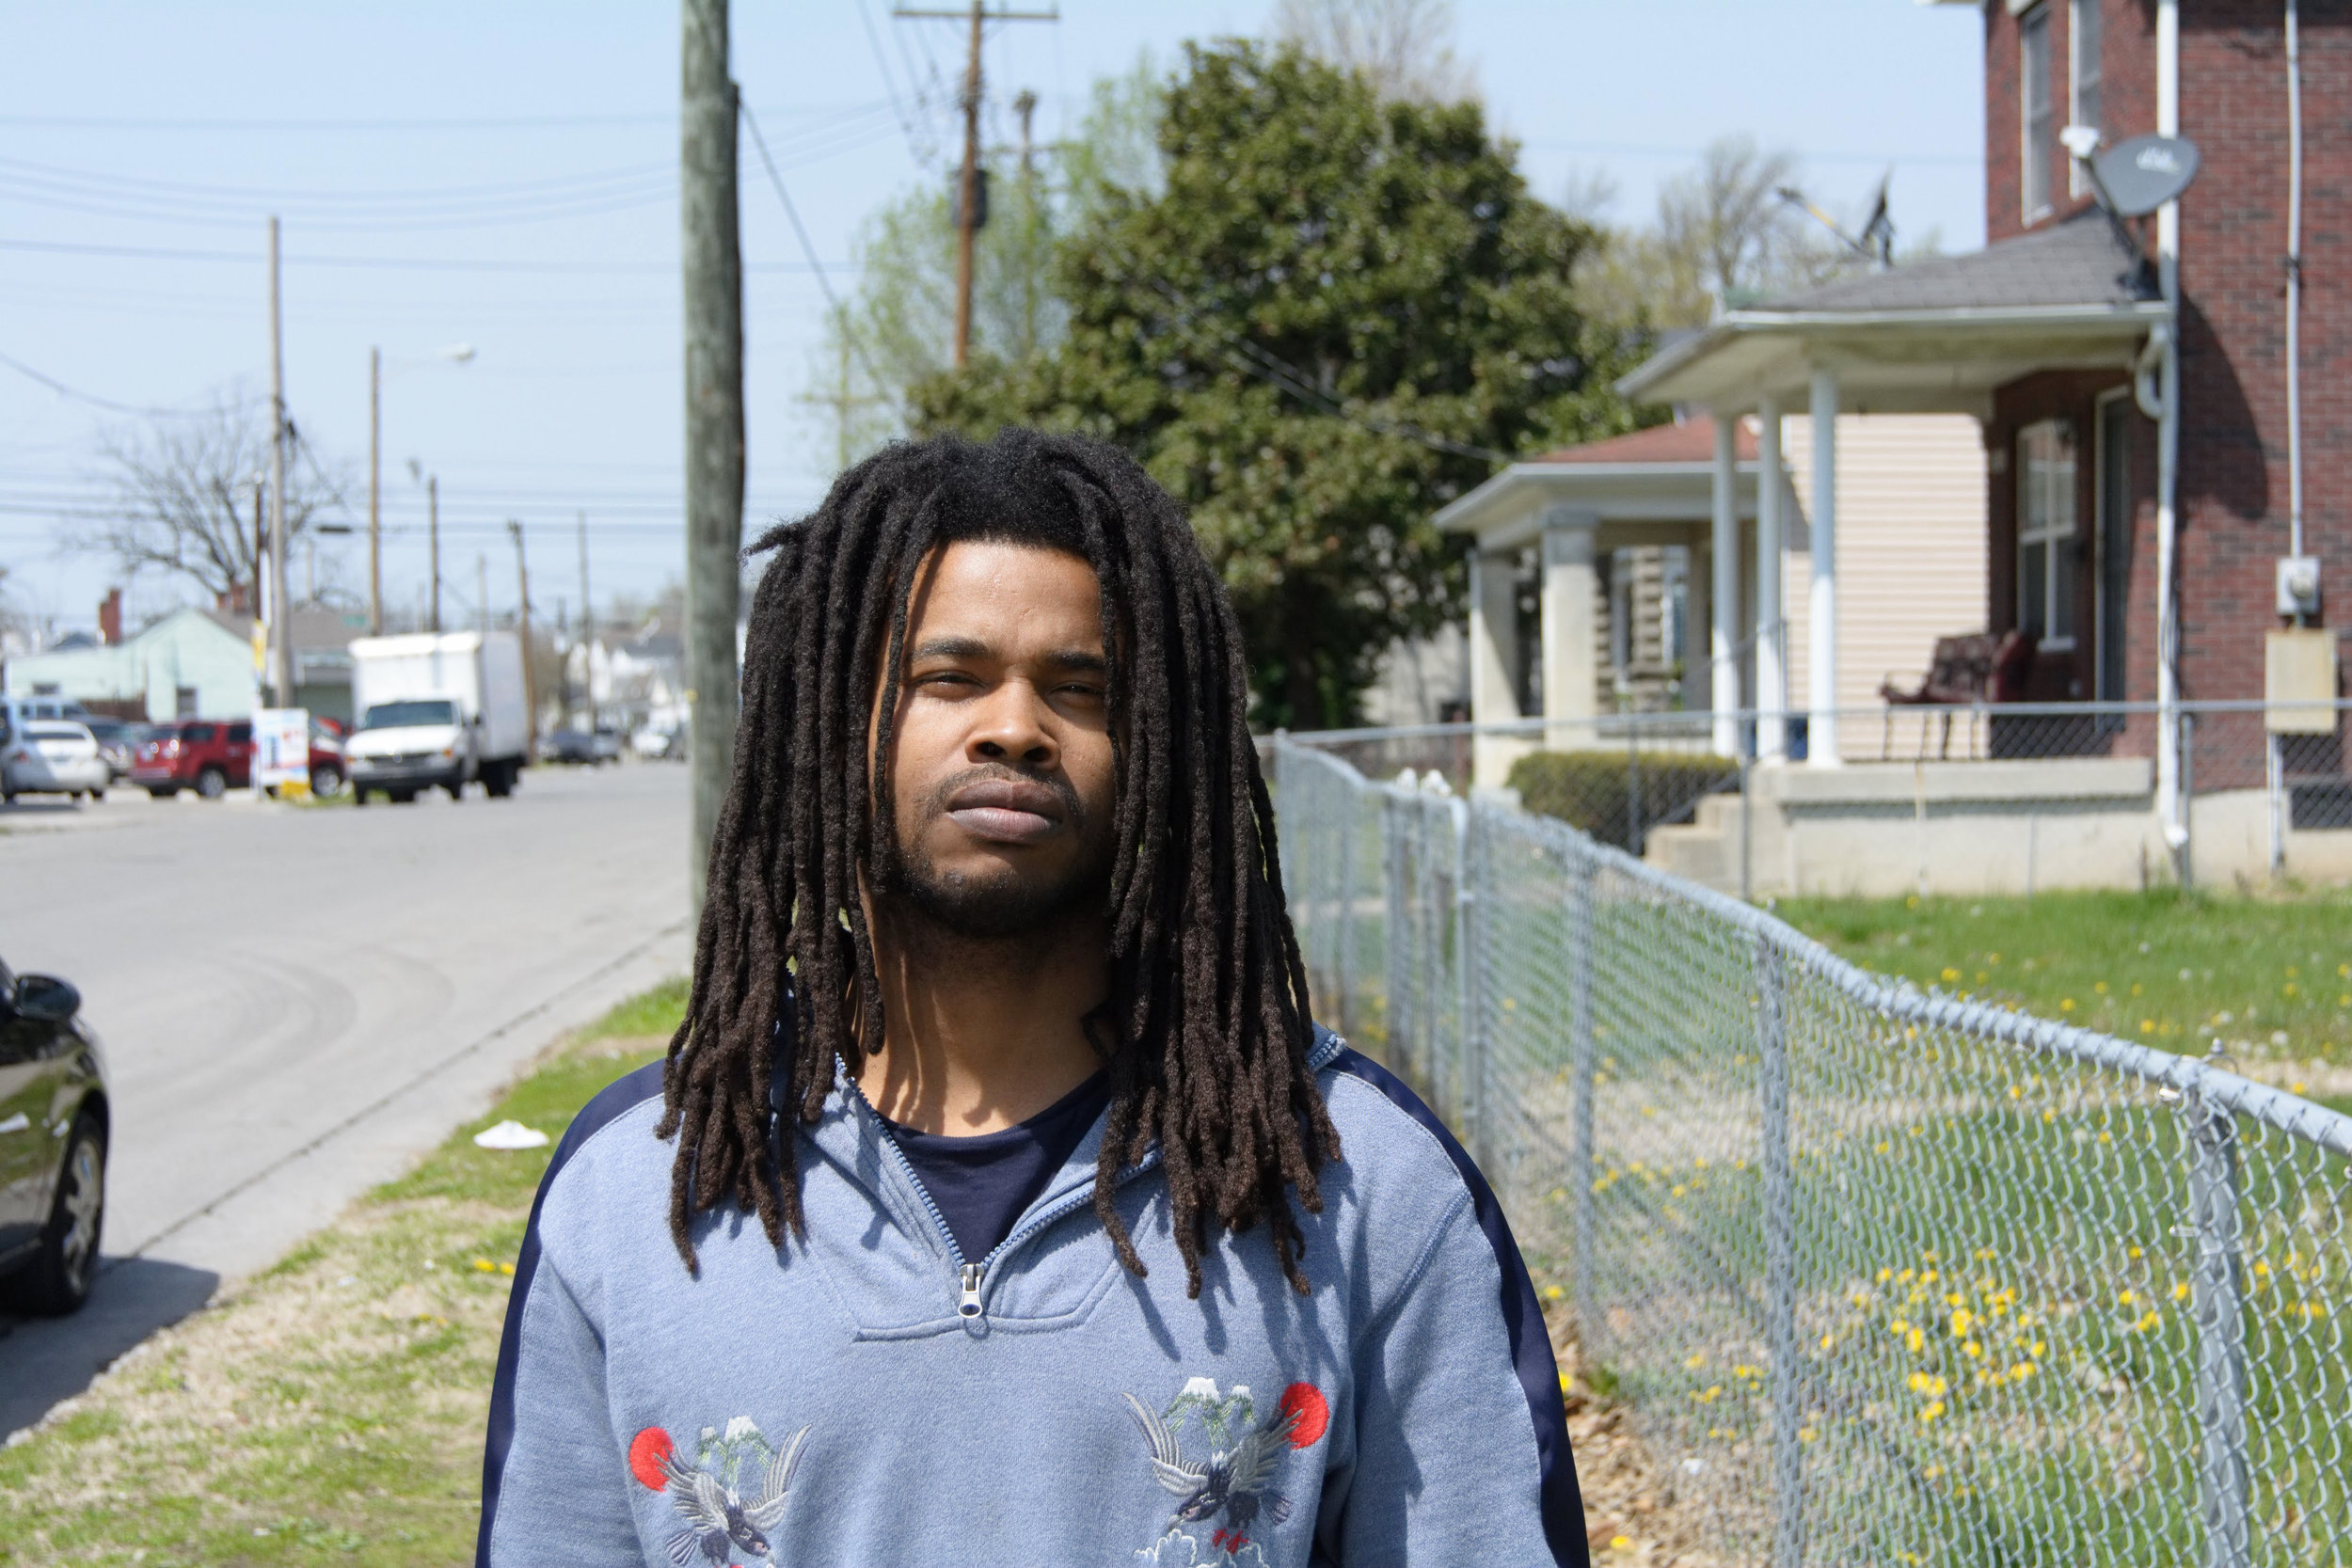 """""""I'm from East Louisville and I've been in the West since 2008. I'm originally from Clarksdale Projects. You see, they tore my neighborhood down. Yeah, so I'm from the East End. I've been in the West for about ten years, now. It's a beautiful part of town. It's bigger. It's alright. I come from the projects, so I was used to the project life, with the apartments and everybody's in one space. It's a bigger part of town, down here.  They need to put more stuff out here for the kids. They're taking all the community centers and tearing everything down. In the neighborhoods, where it's majority black, there's no positive activities for the kids. Yeah, they got churches but everybody's not into religion. You can't force that on nobody. There ain't no skating rink, movie theater, no nice little centers with game rooms and stuff. Even if it's a computer room, where the kids can just go in there and get on a computer or an iPad. They need stuff like that.  The struggle inspires me because I really want more. I want more for myself and my community. I know what would help if the opportunity was given to a whole lot of us. A whole lot of us ain't got nothing to do but to get get into the streets. The struggle inspires me and just seeing young black men turn their life around and doing something positive. When I see other people grow, it inspires me and makes me wanna grow. It makes me wanna put out that energy to make someone else grow.  I'm putting my energy to making myself better. I got a book called, 'Hustling is a Habit', it's on Amazon. I'm also about to drop this new music, on Tuesday, on all social media outlets. It's called 'A Mouth Full'. I gotta couple properties, I'm into real estate. I'm trying to build a solid foundation and leave a nice little legacy.The way society is set up, it's best to invest in yourself and be an entrepreneur. It's so many opportunities and it make things happen for yourself.  Believe in yourself. Everybody's a genius, you just have to tap"""